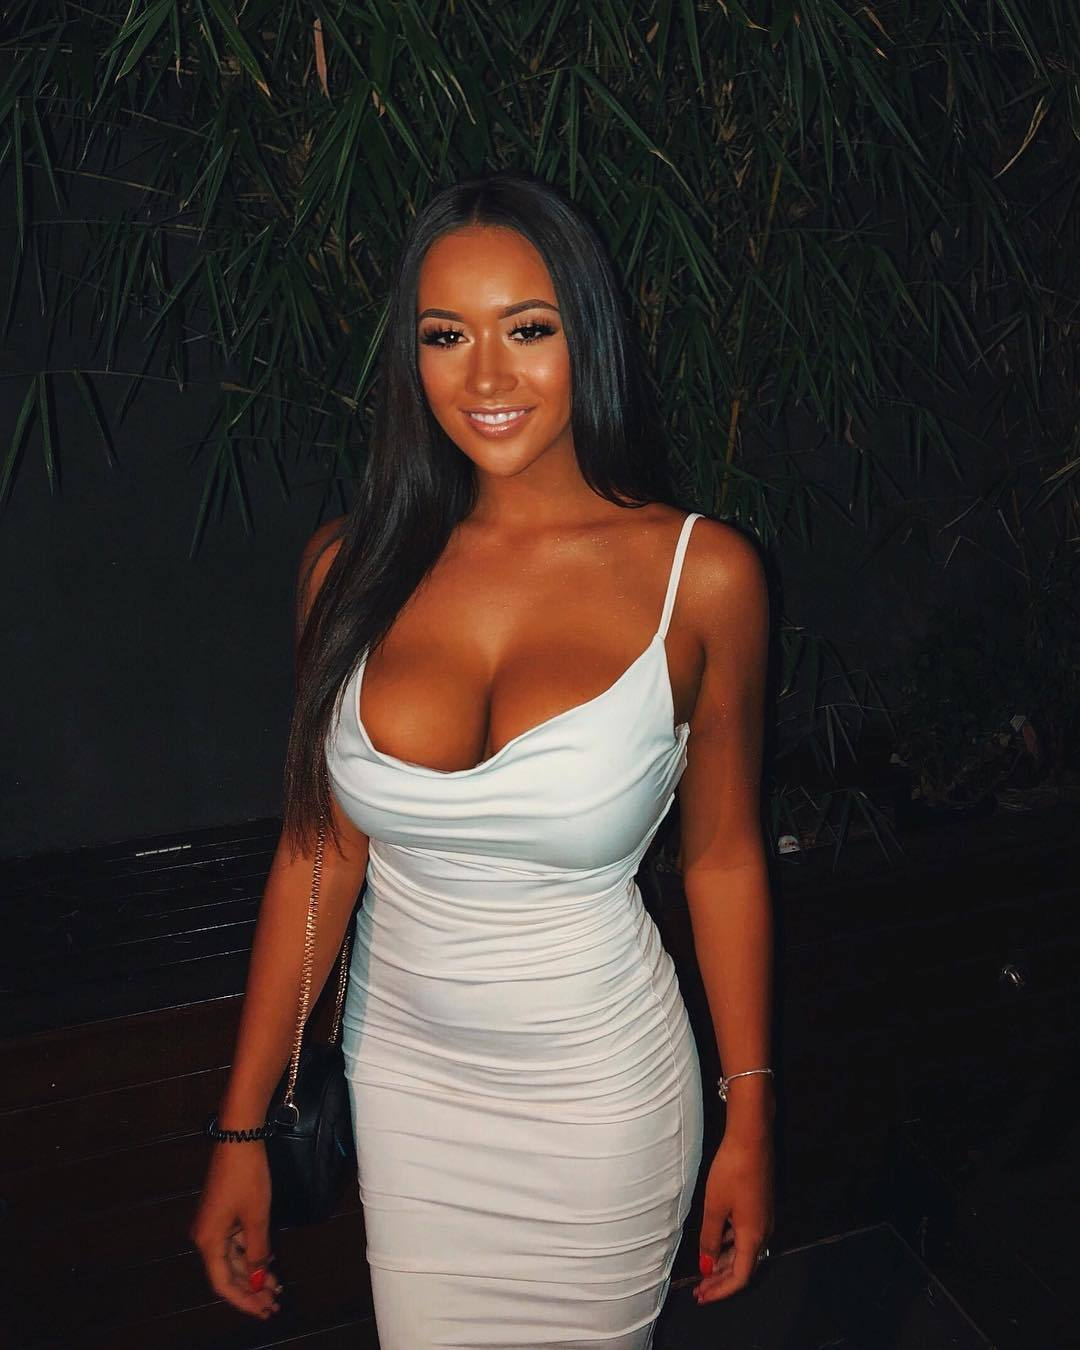 Tits in tight tops